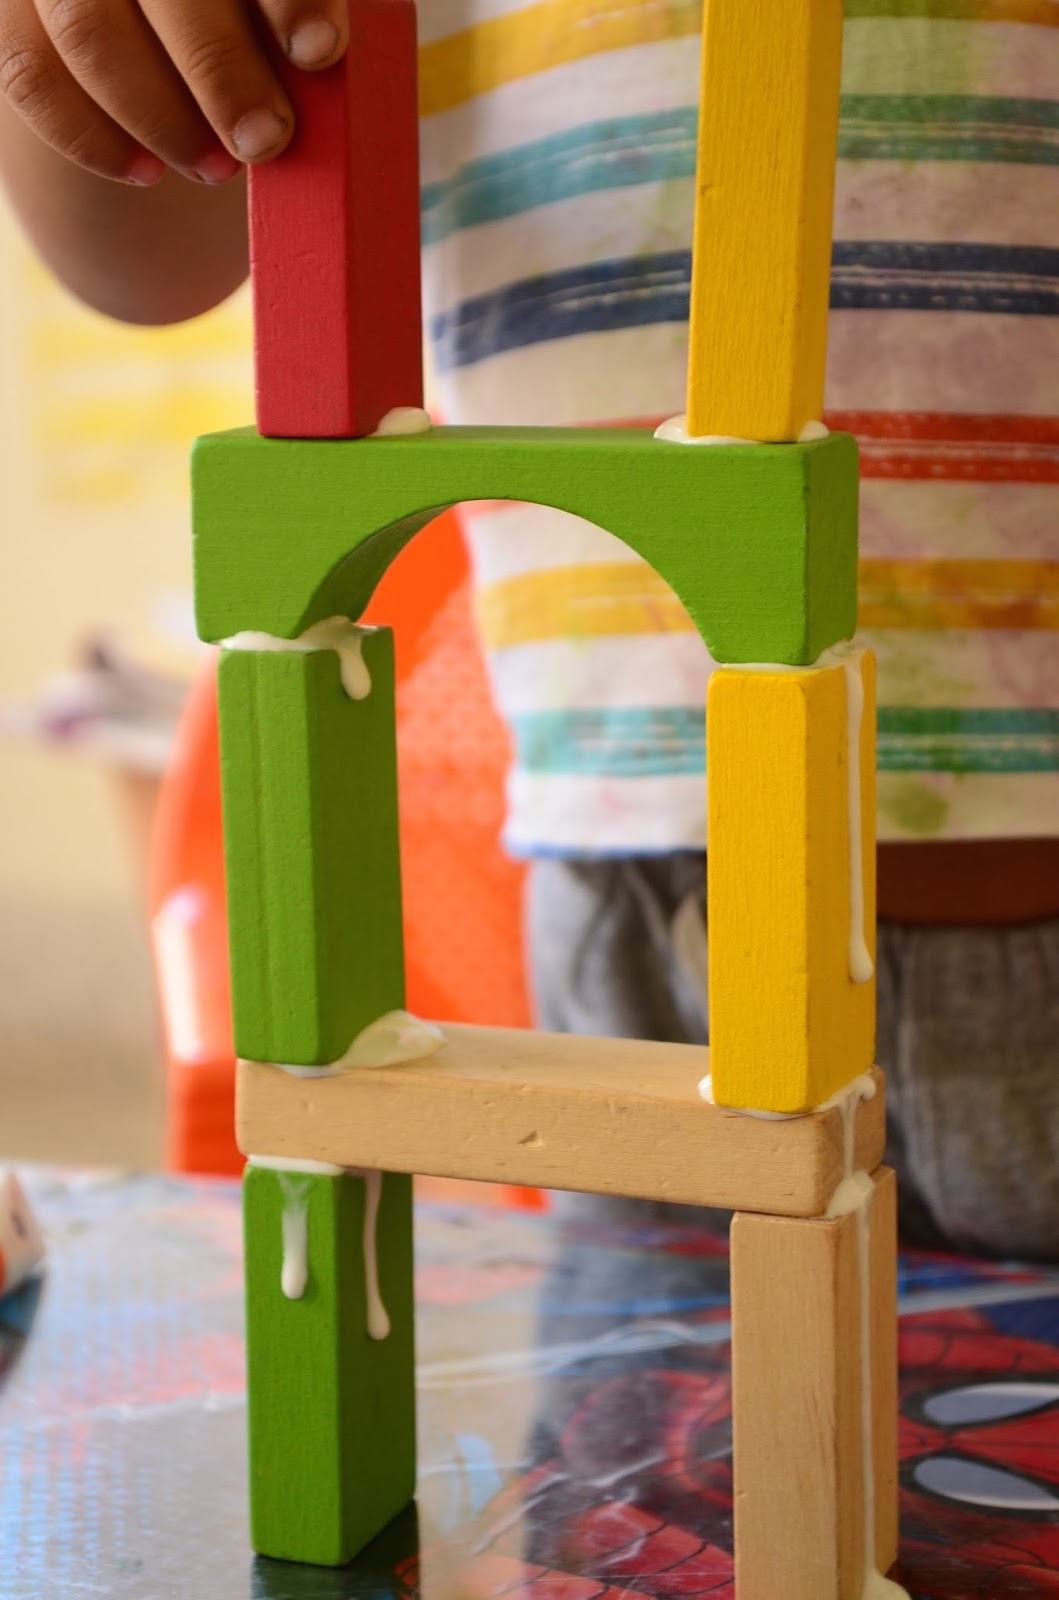 The Practical Mom: Block Play for Kids who love Art